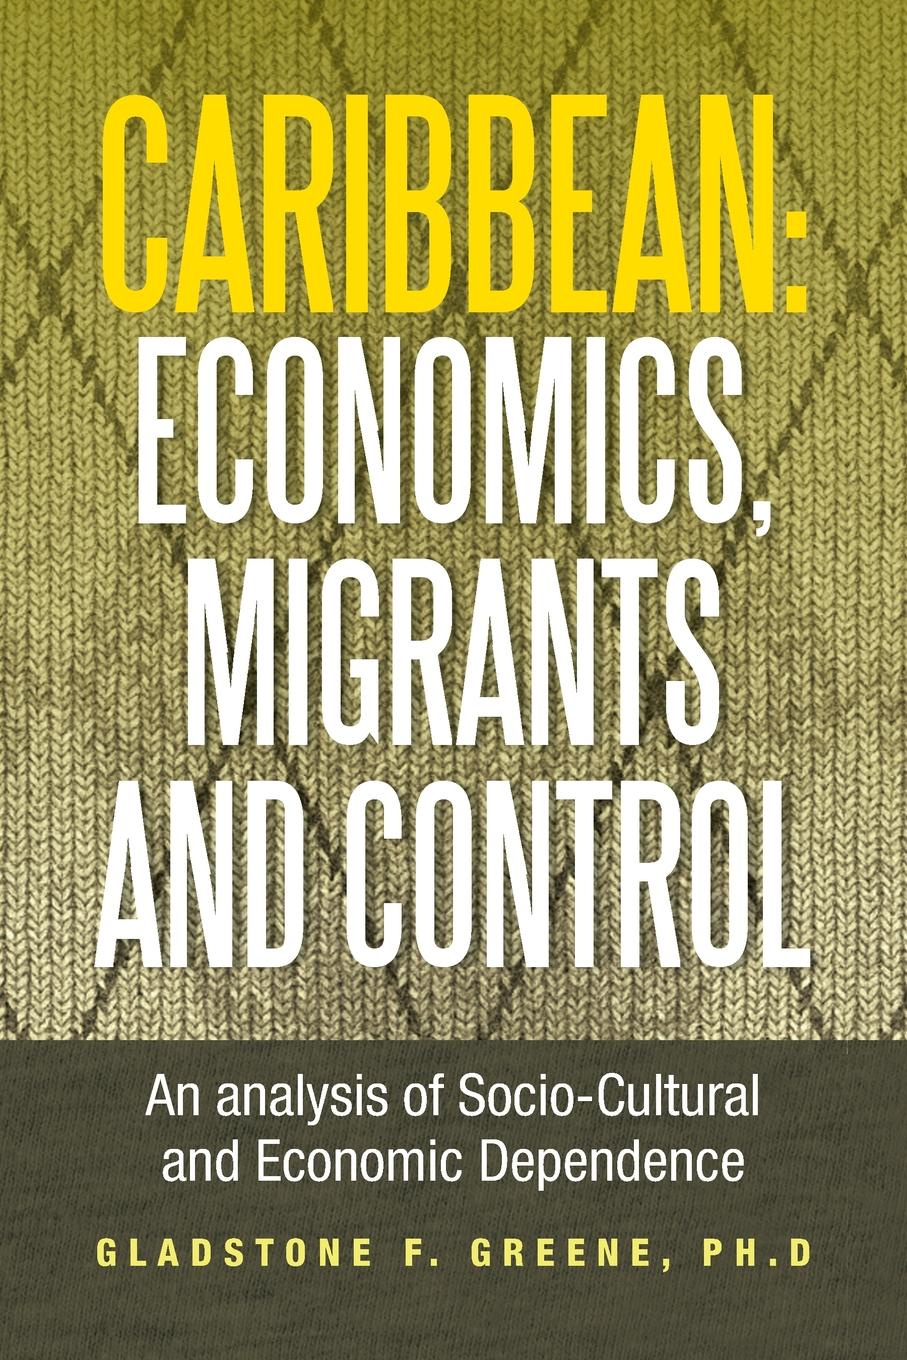 купить Gladstone F. Greene Caribbean. Economics, Migrants and Control: An Analysis of Socio-Cultural and Economic Dependence по цене 1464 рублей